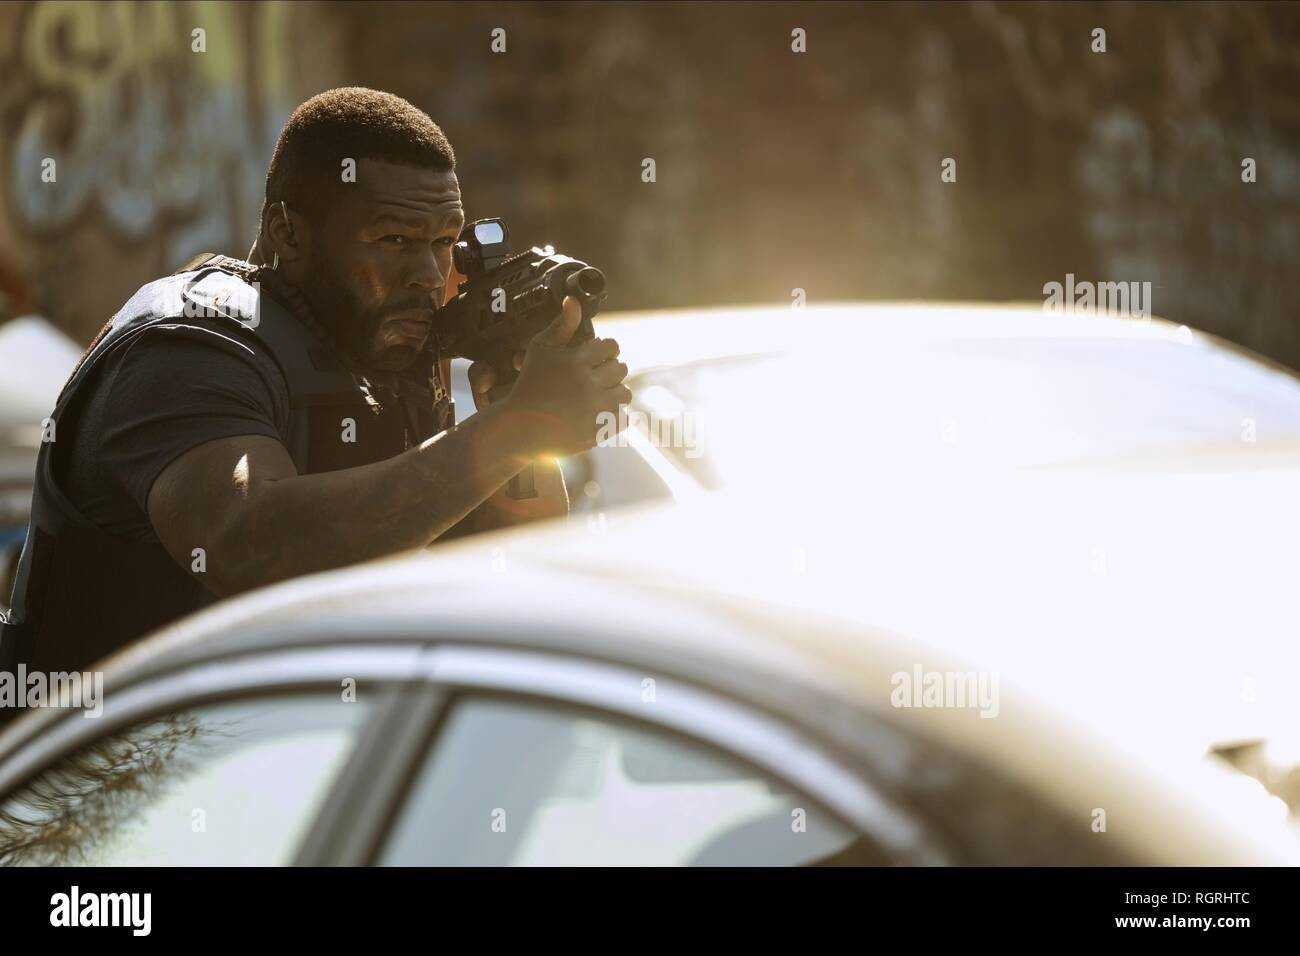 50 CENT DEN OF THIEVES (2018) - Stock Image